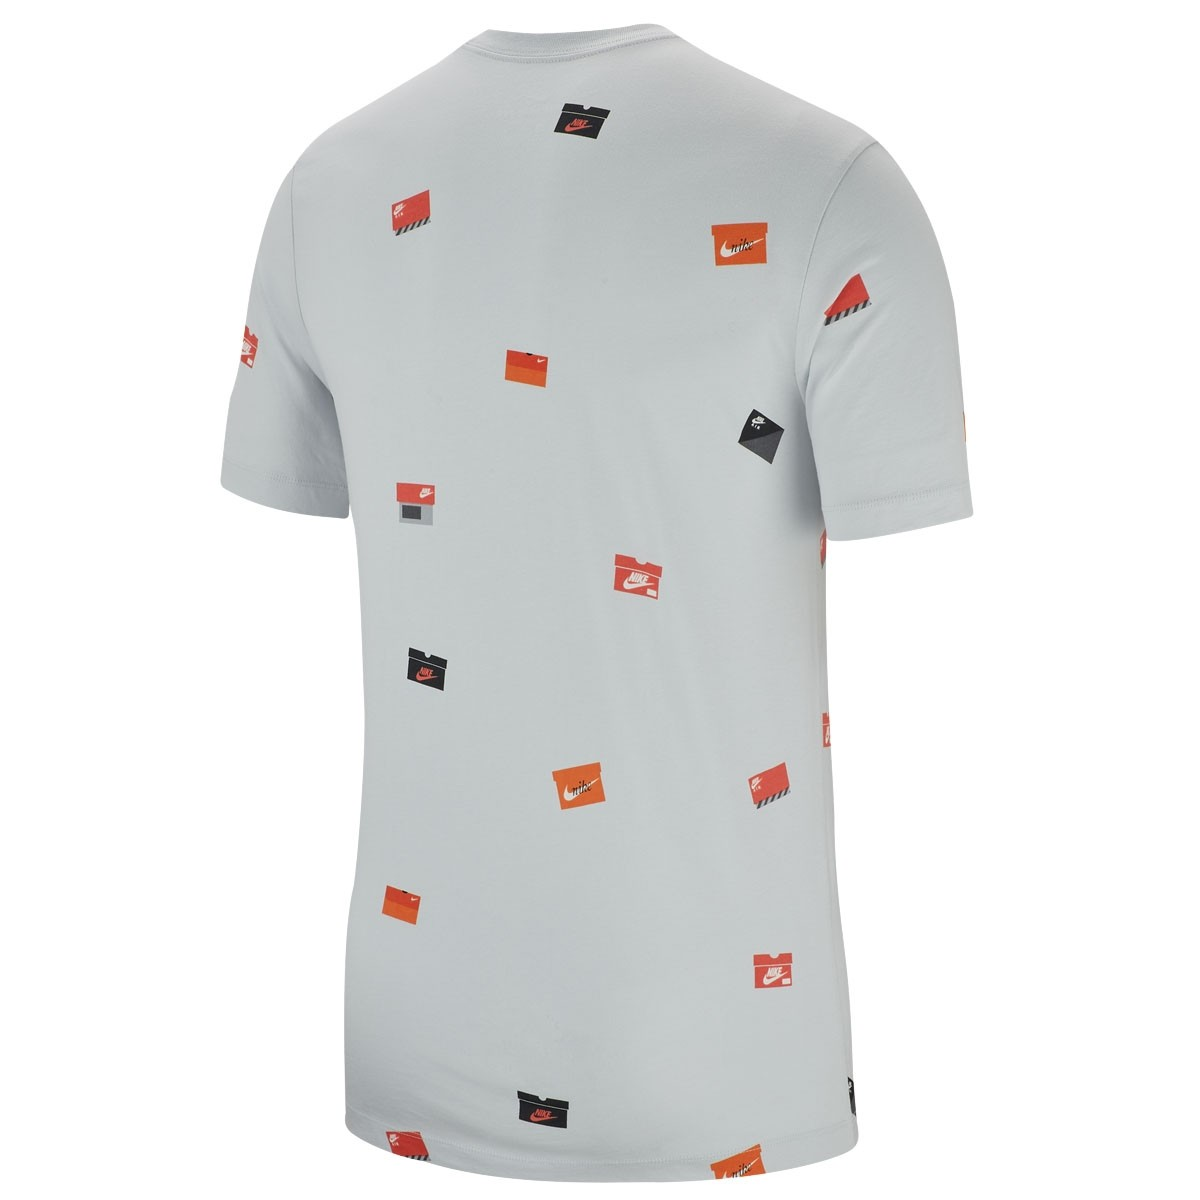 Nike Shoe Box T-shirt 'Grey' BQ0066-043